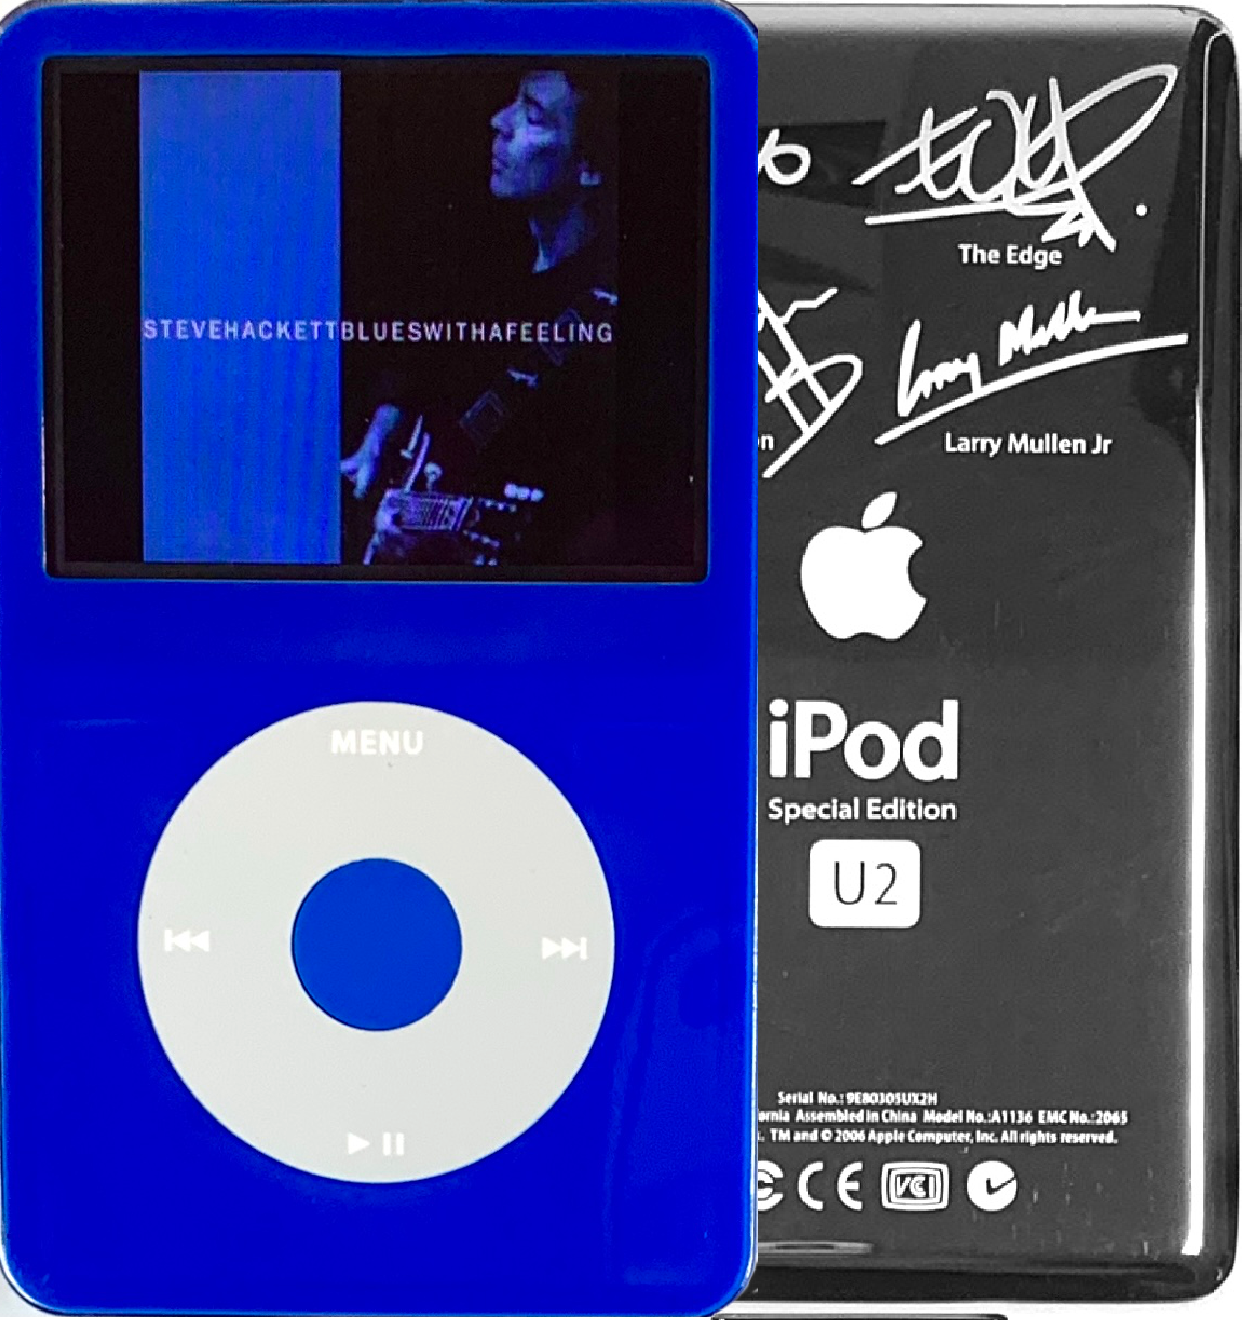 New Apple iPod Video Classic 5th & 5.5 Enhanced Blue / Grey / Blue (U2 Special Edition Silver)